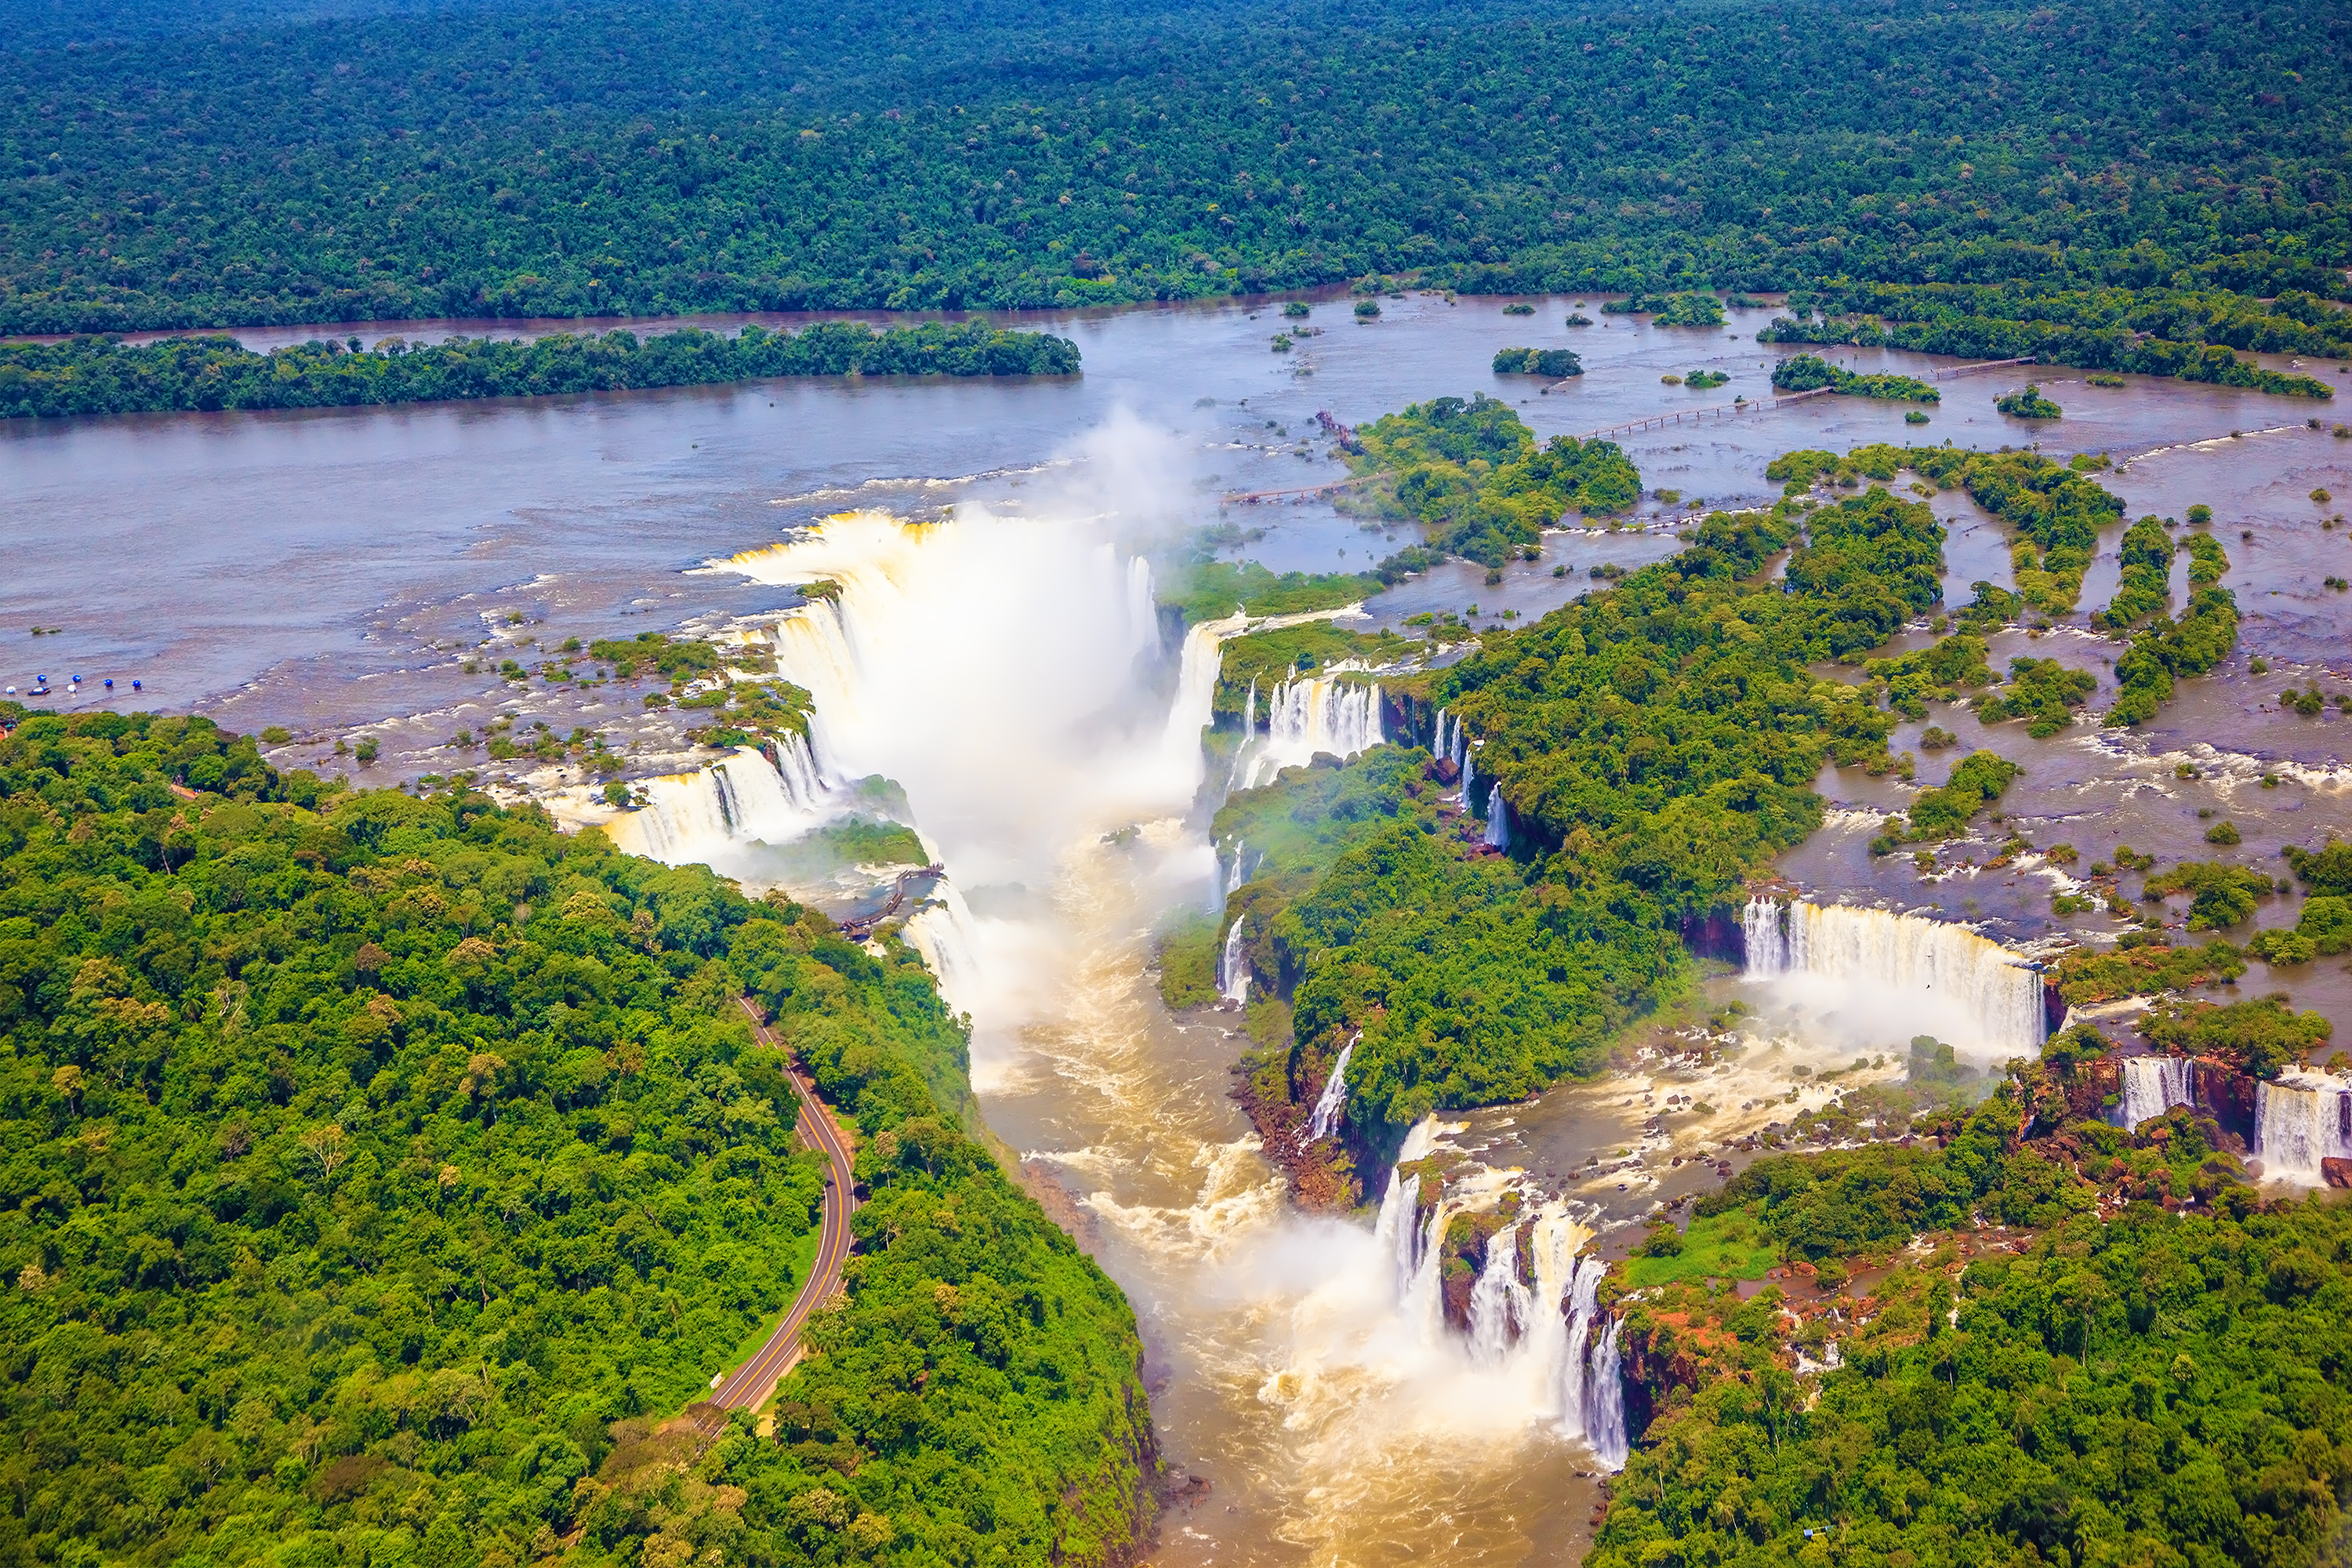 Iguazu Falls from above.